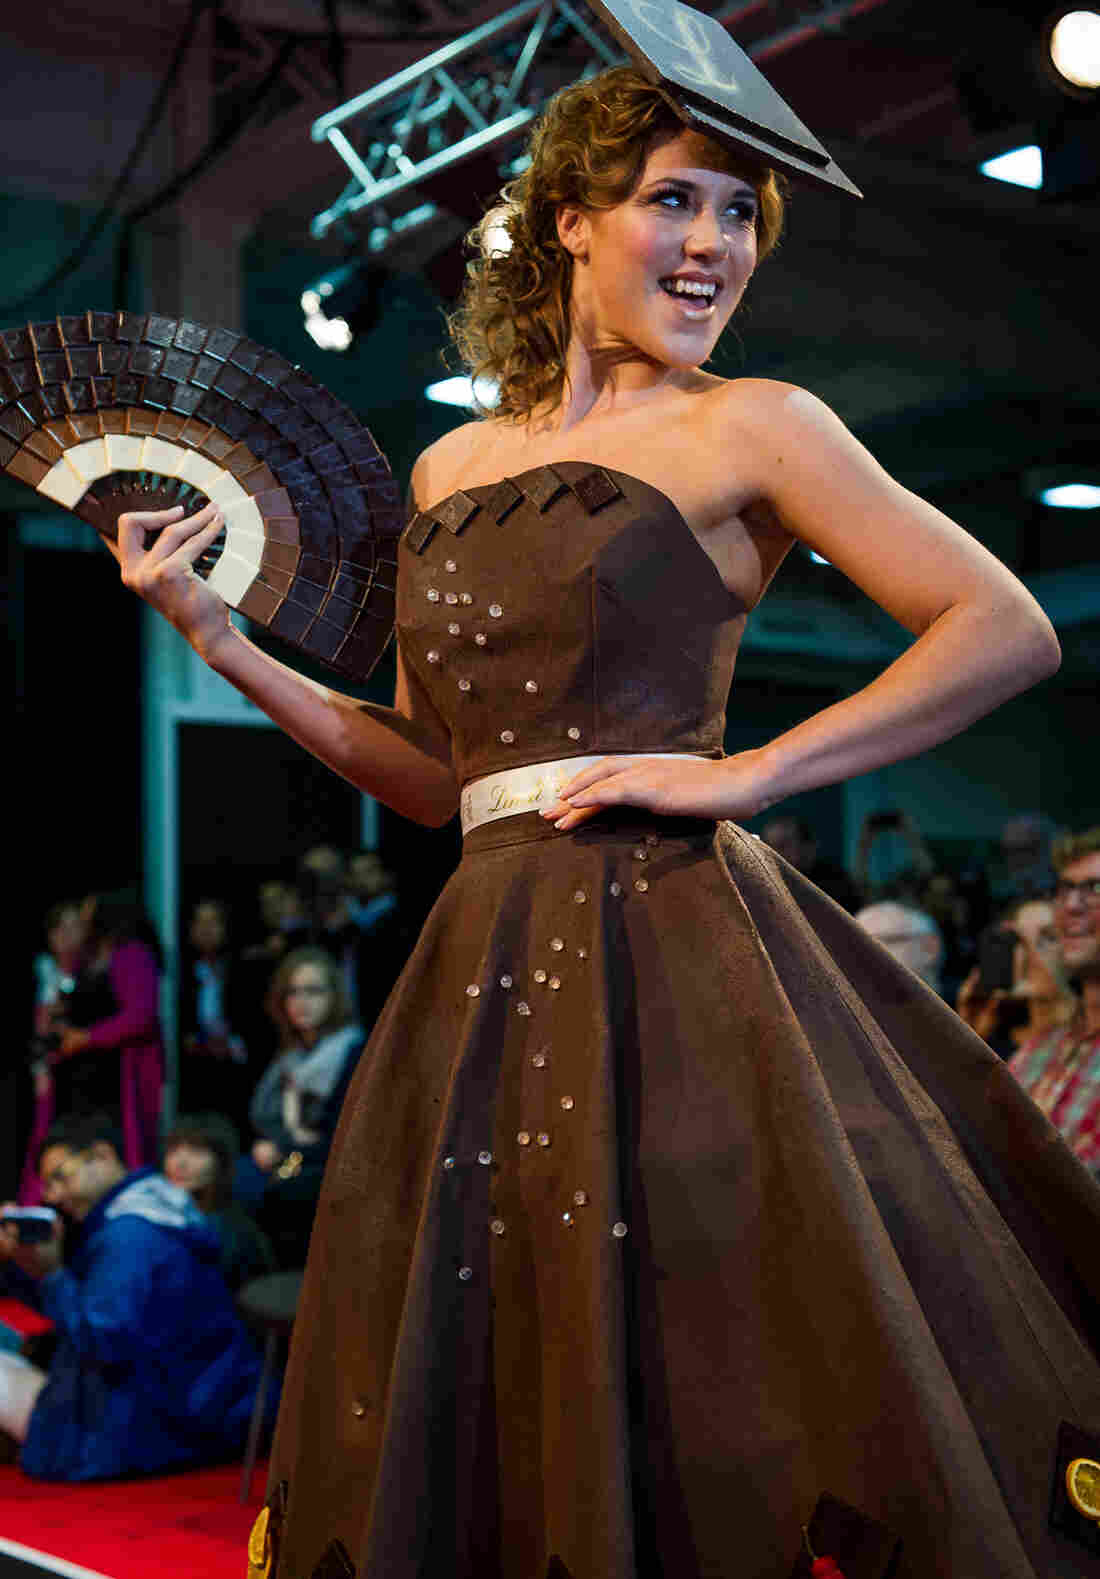 """Eternal Diamond,"" an A-line dress hand-painted with 40 pounds of Lindt chocolate. It's adorned simply along the hem with chili and orange segments, flavors used in speciality Lindt chocolate bars. The fan and hat are also crafted from chocolate, of course."